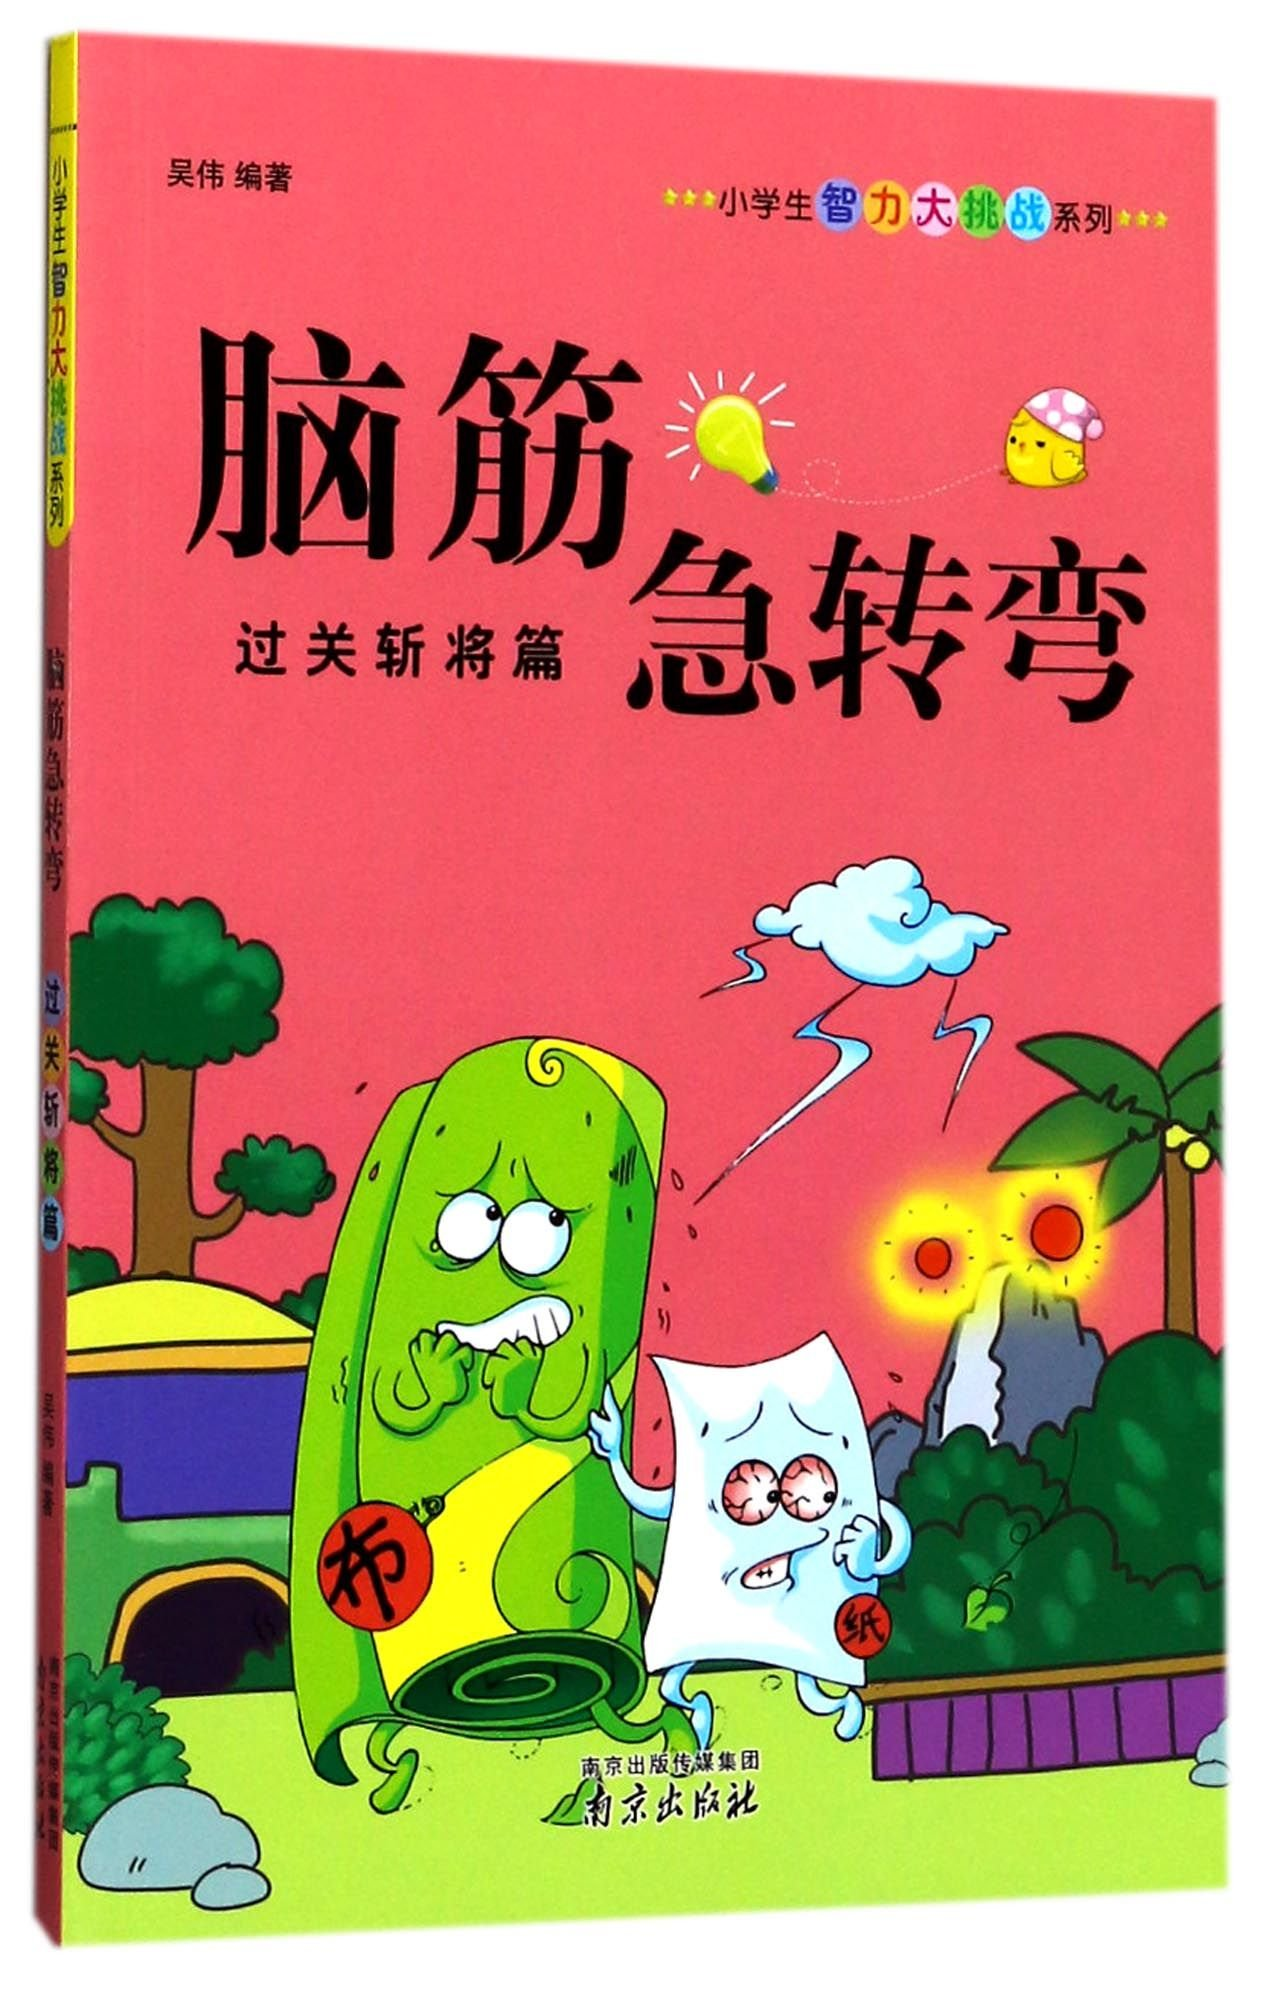 Brain Twists: Overcome Difficulties (Chinese Edition) pdf